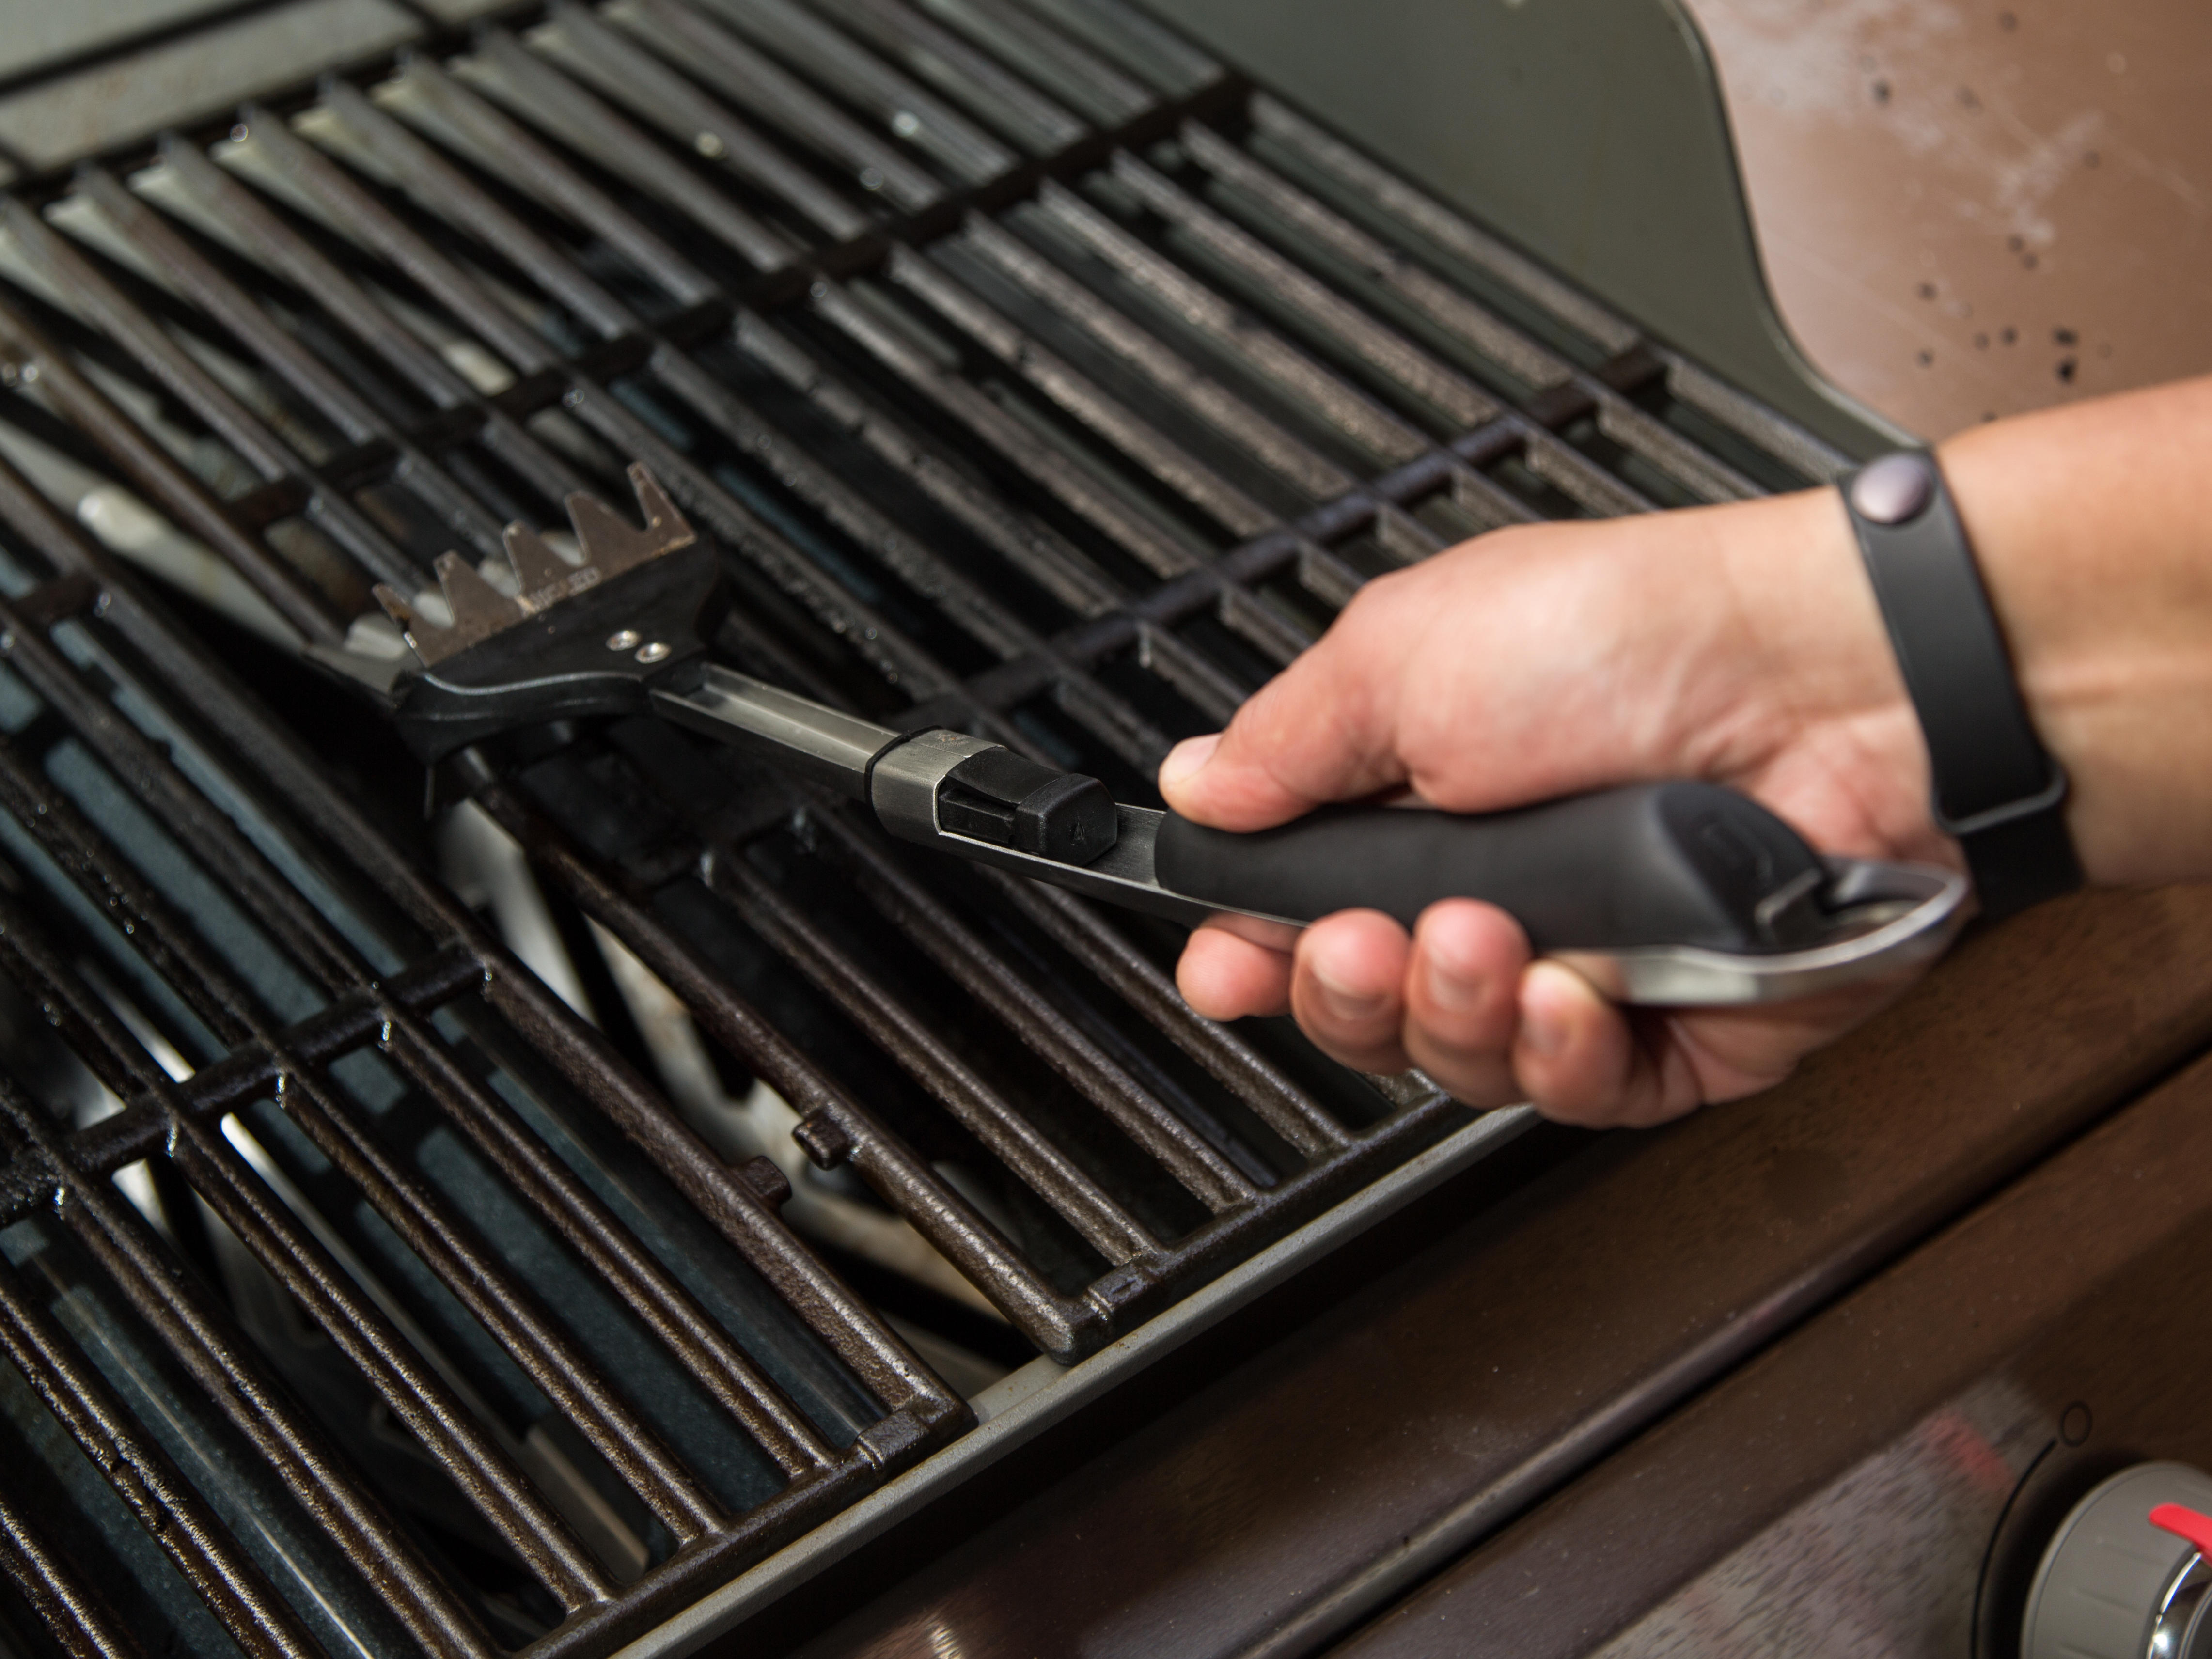 How to clean your grill: Grill grates are just the start - CNET